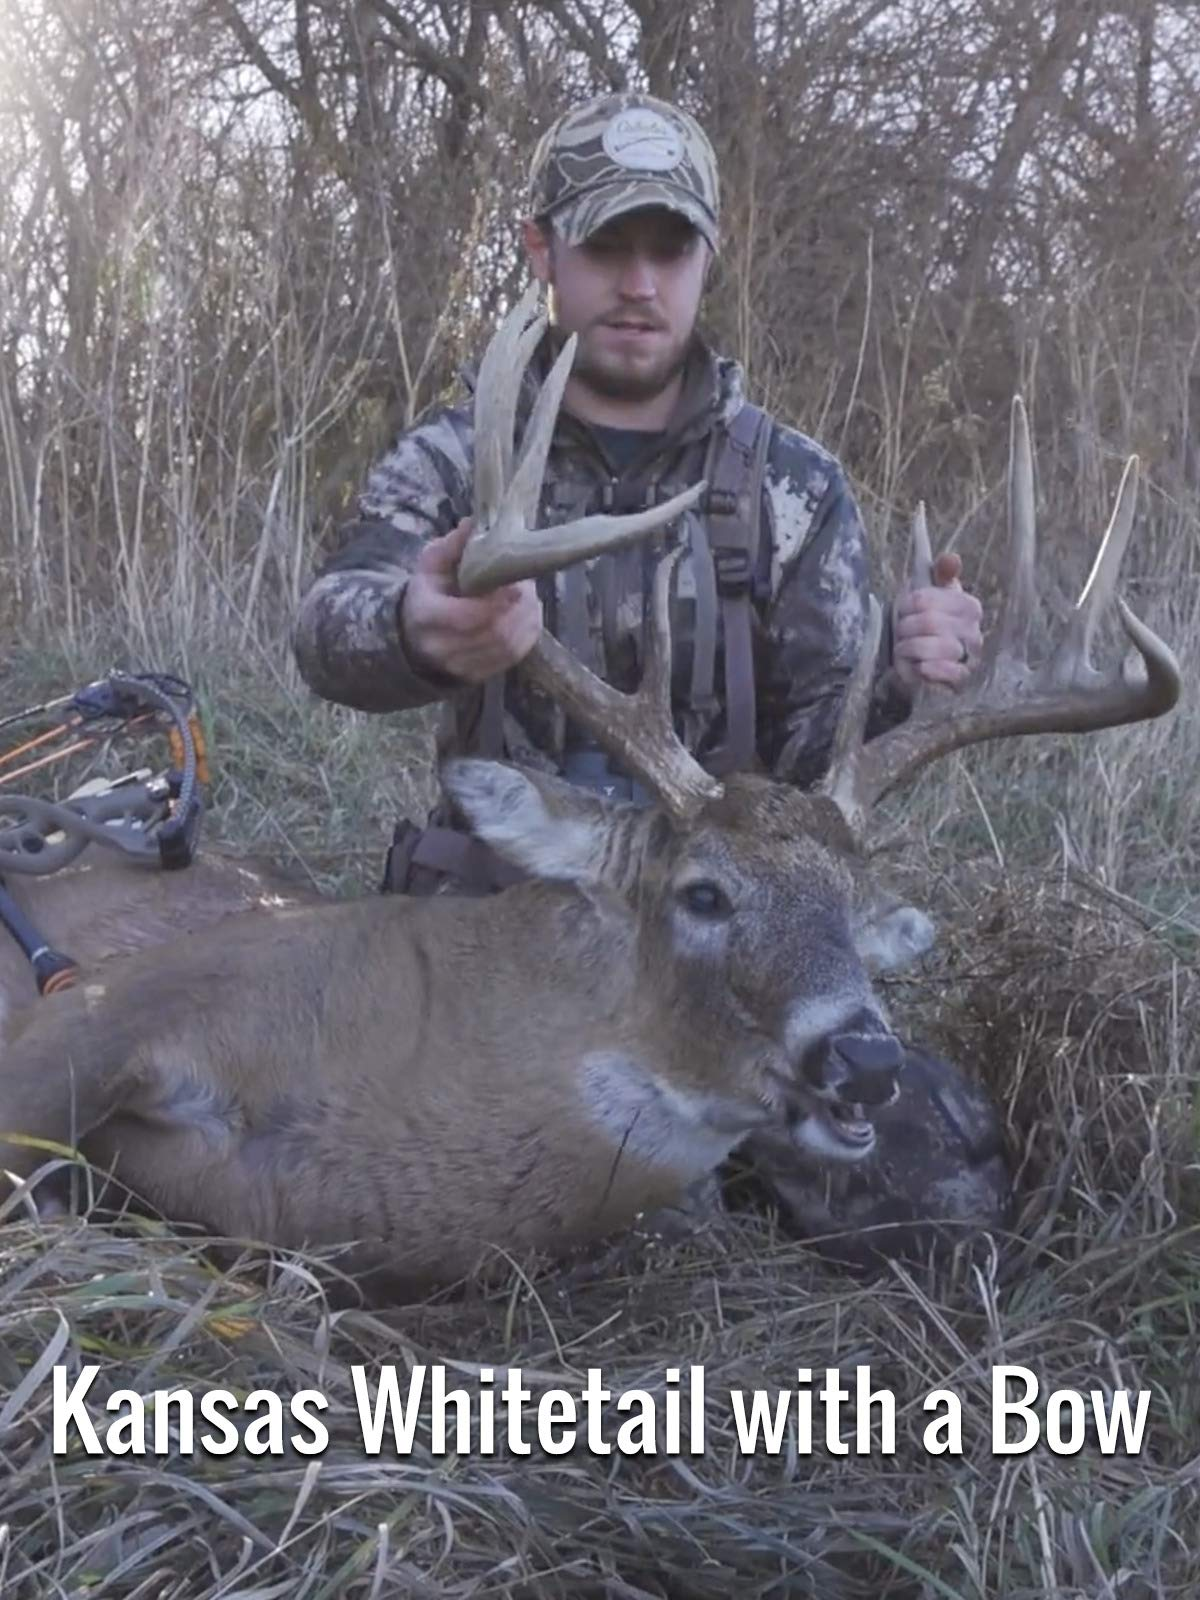 Kansas Whitetail with a Bow